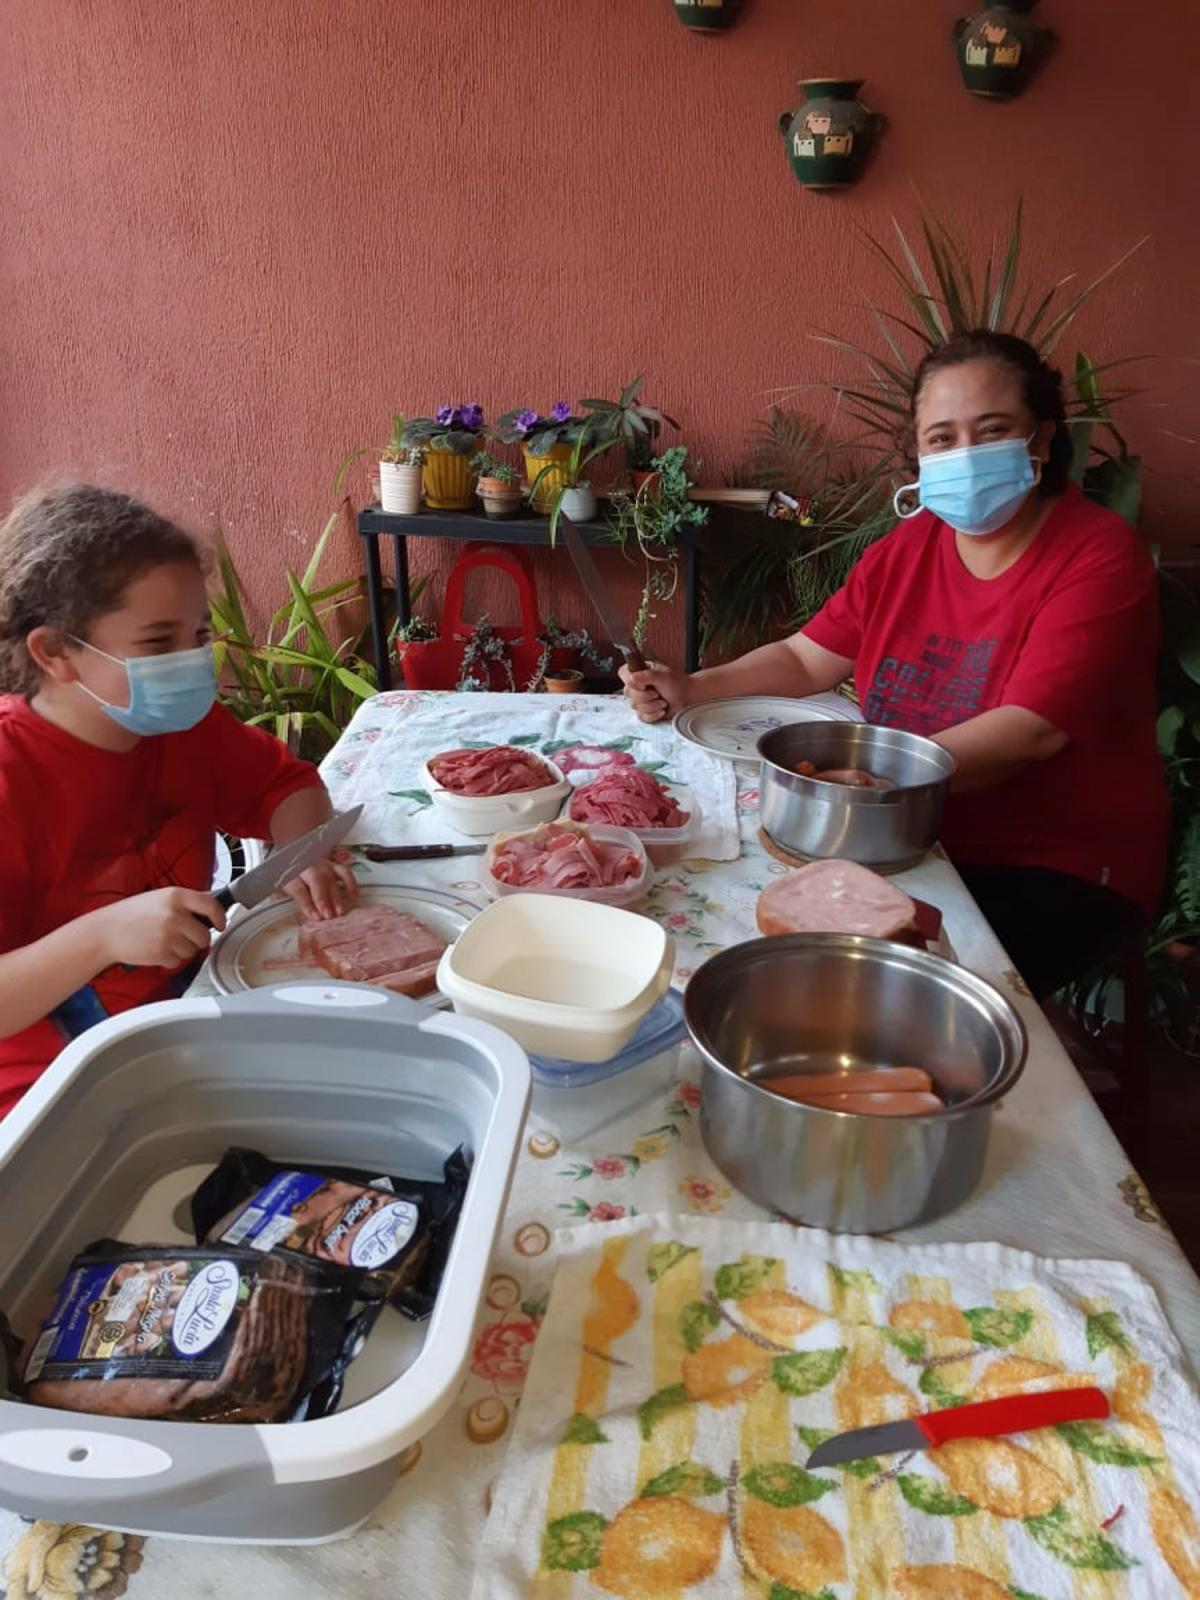 Pandemic food prep: Ana Michelle Dubon Estrada made fiambre, a traditional Guatemalan salad-like dish served on the Day of the Dead, with her daughter in her grandmother's garage — while grandmother called out instructions from a nearby doorway.